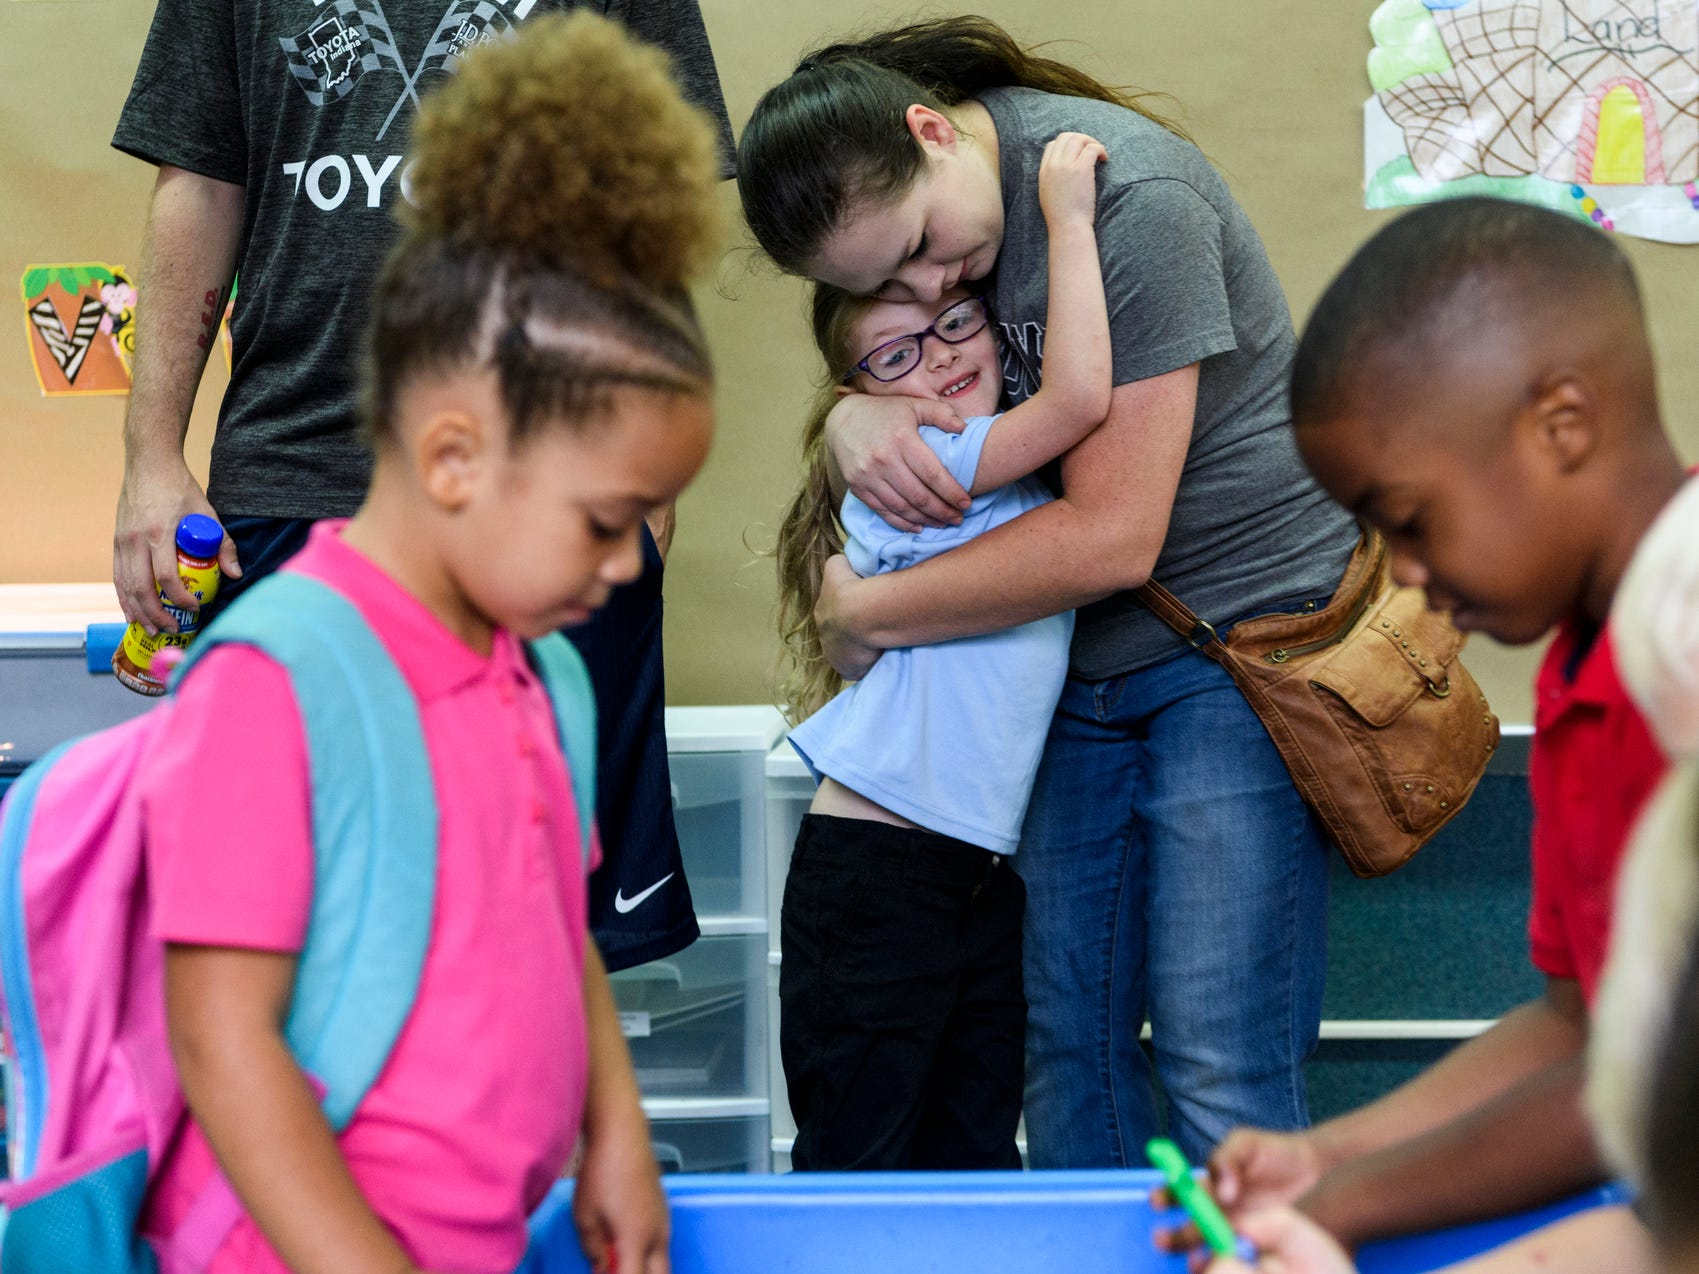 Eliza Ohning, center left, receives a hug from her mother Tyanna Frick, center right, before being left in her kindergarten classroom with teacher Lyndsey Schneider, not pictured, and her new classmates on the first day of school at Dexter Elementary School in Evansville, Ind., Wednesday, Aug. 8, 2018.